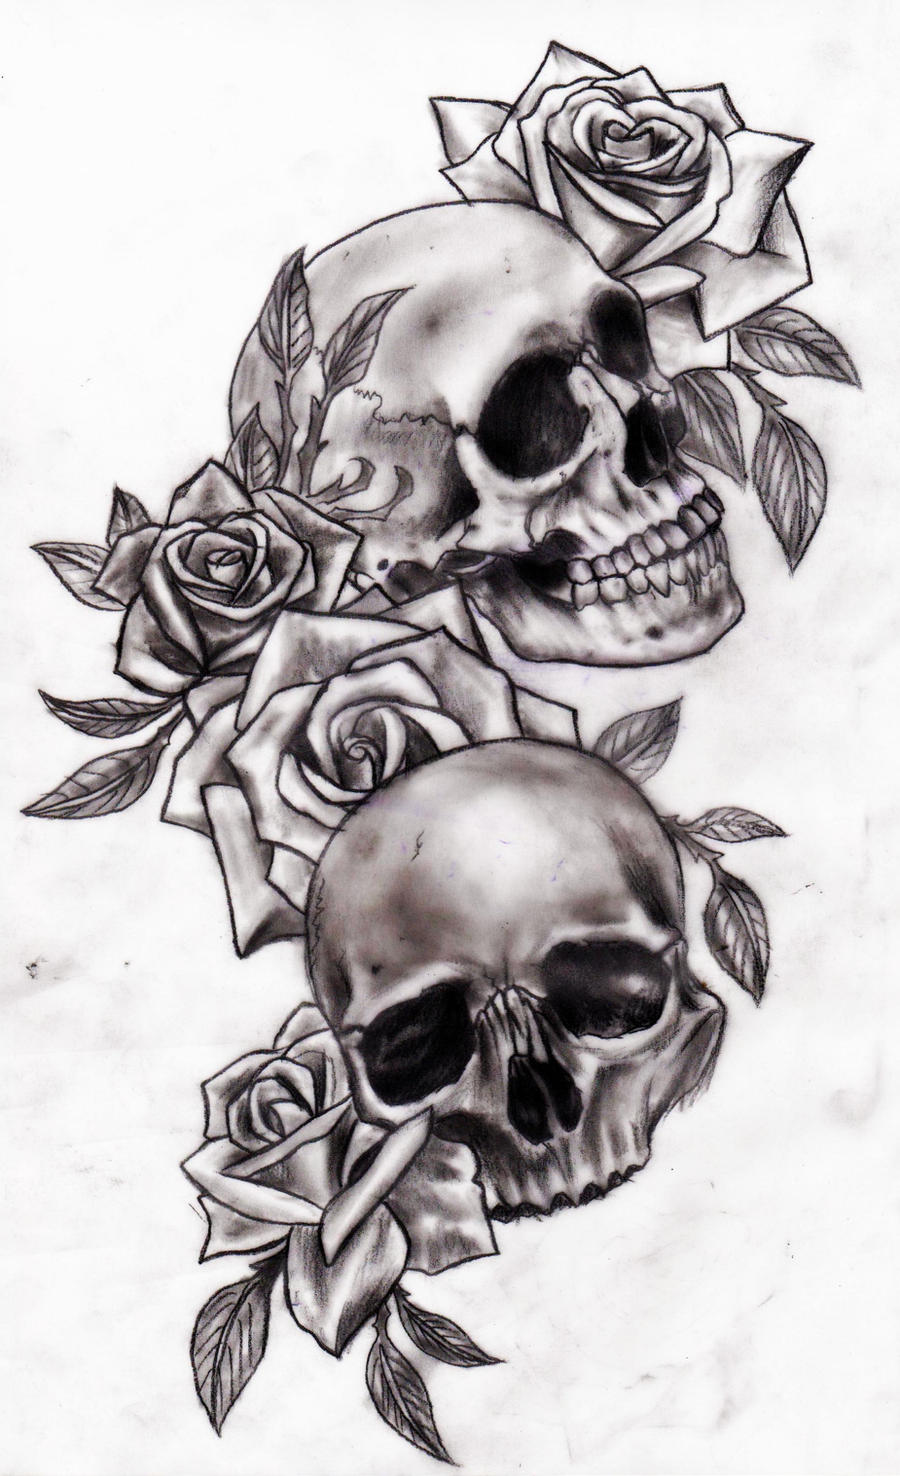 This is an image of Transformative Drawing Of Skulls And Roses